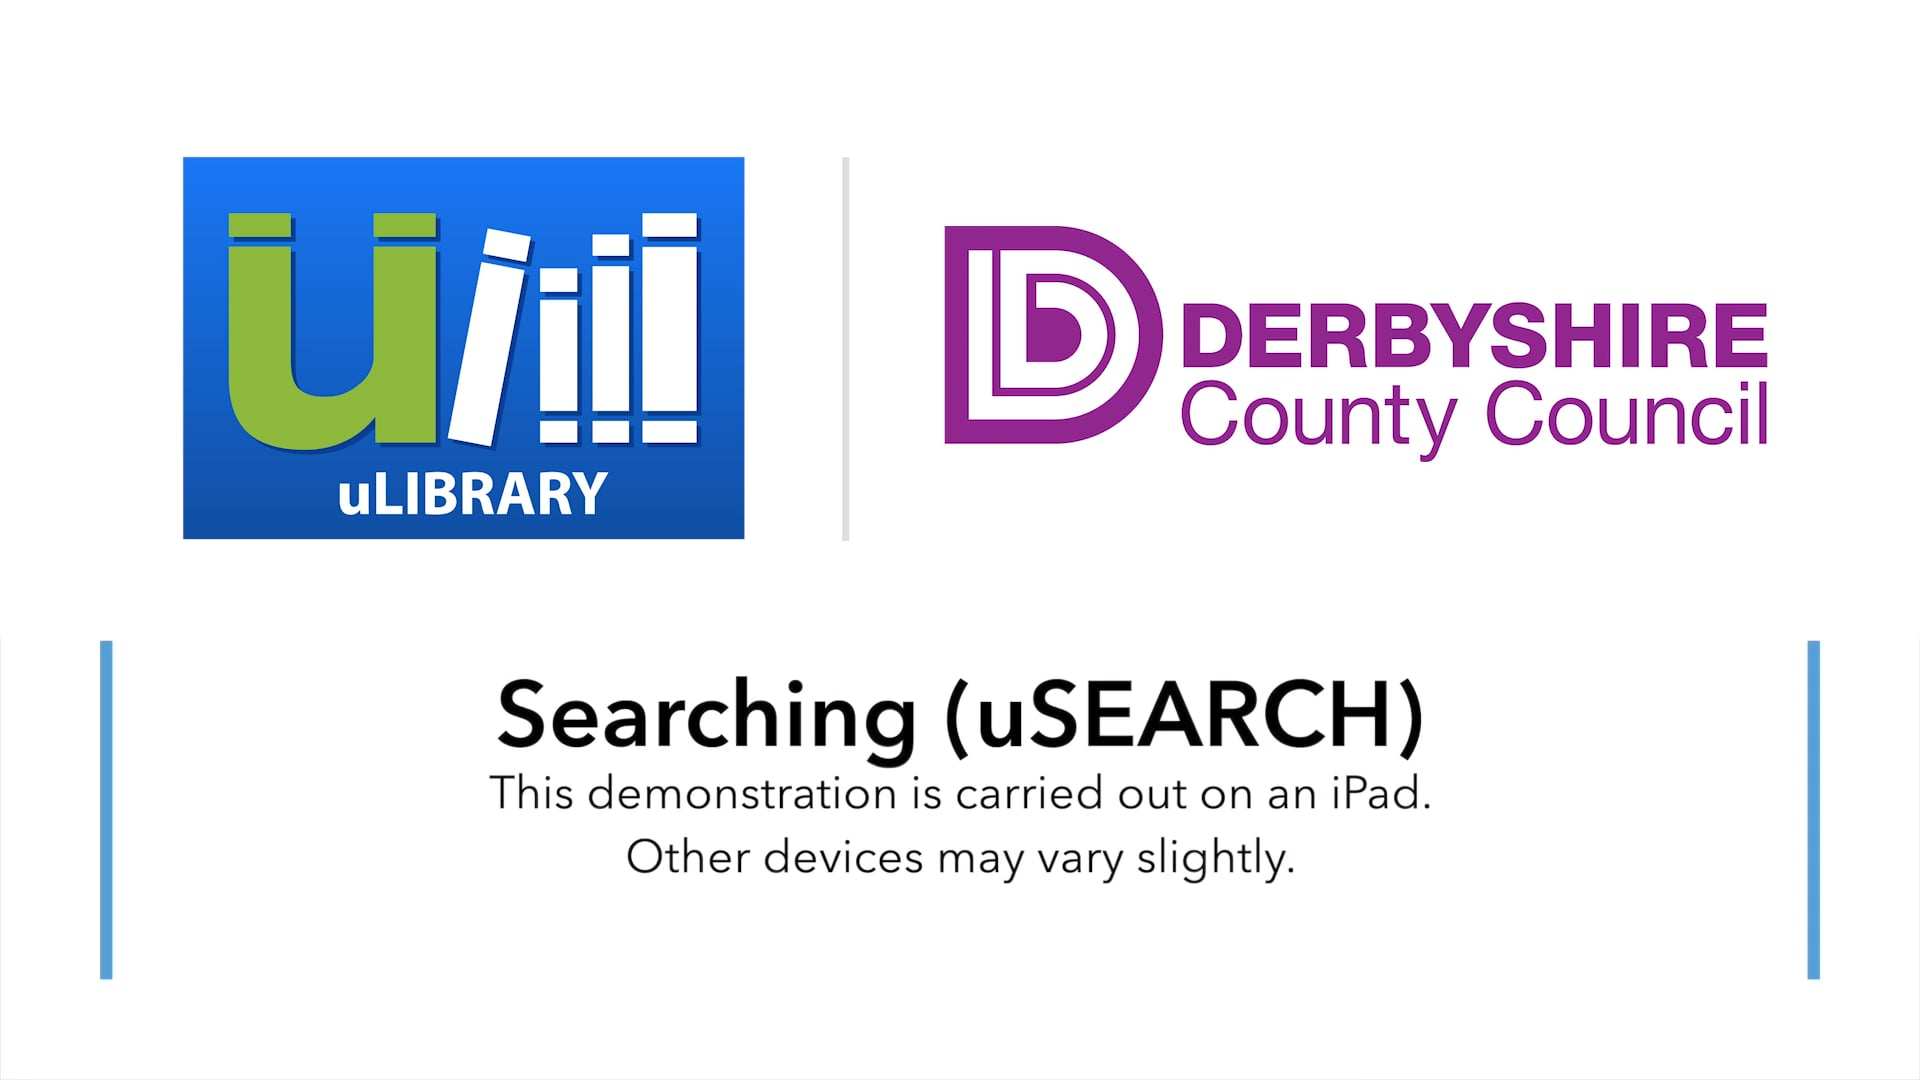 Searching uLIBRARY using the App (uSEARCH)